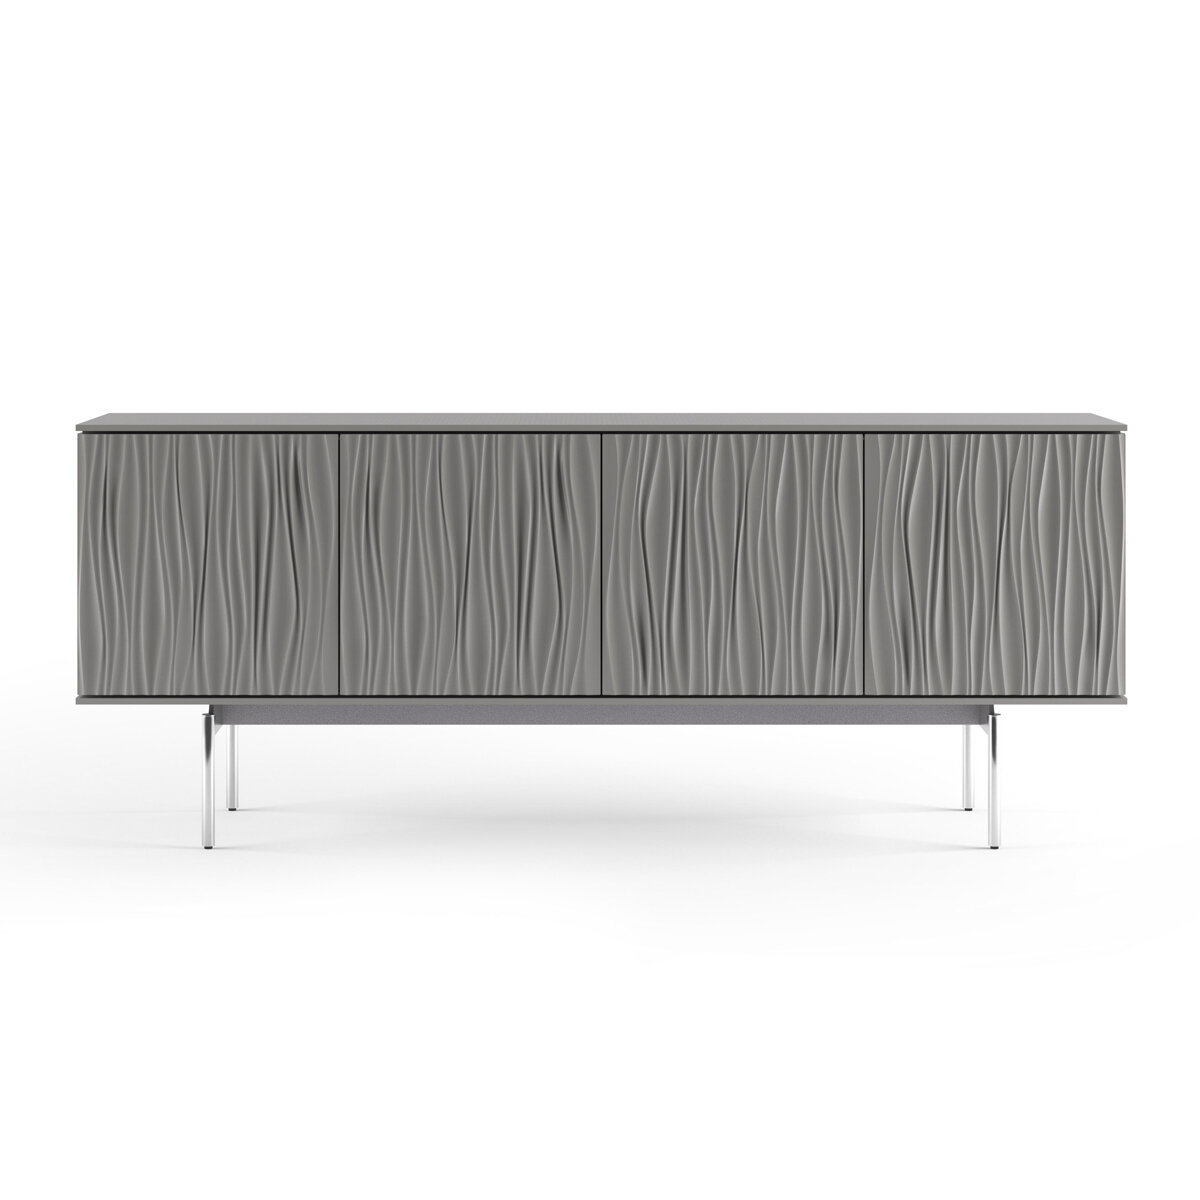 Modern & Contemporary Media Credenza | Allmodern Intended For Lowrey Credenzas (View 16 of 30)